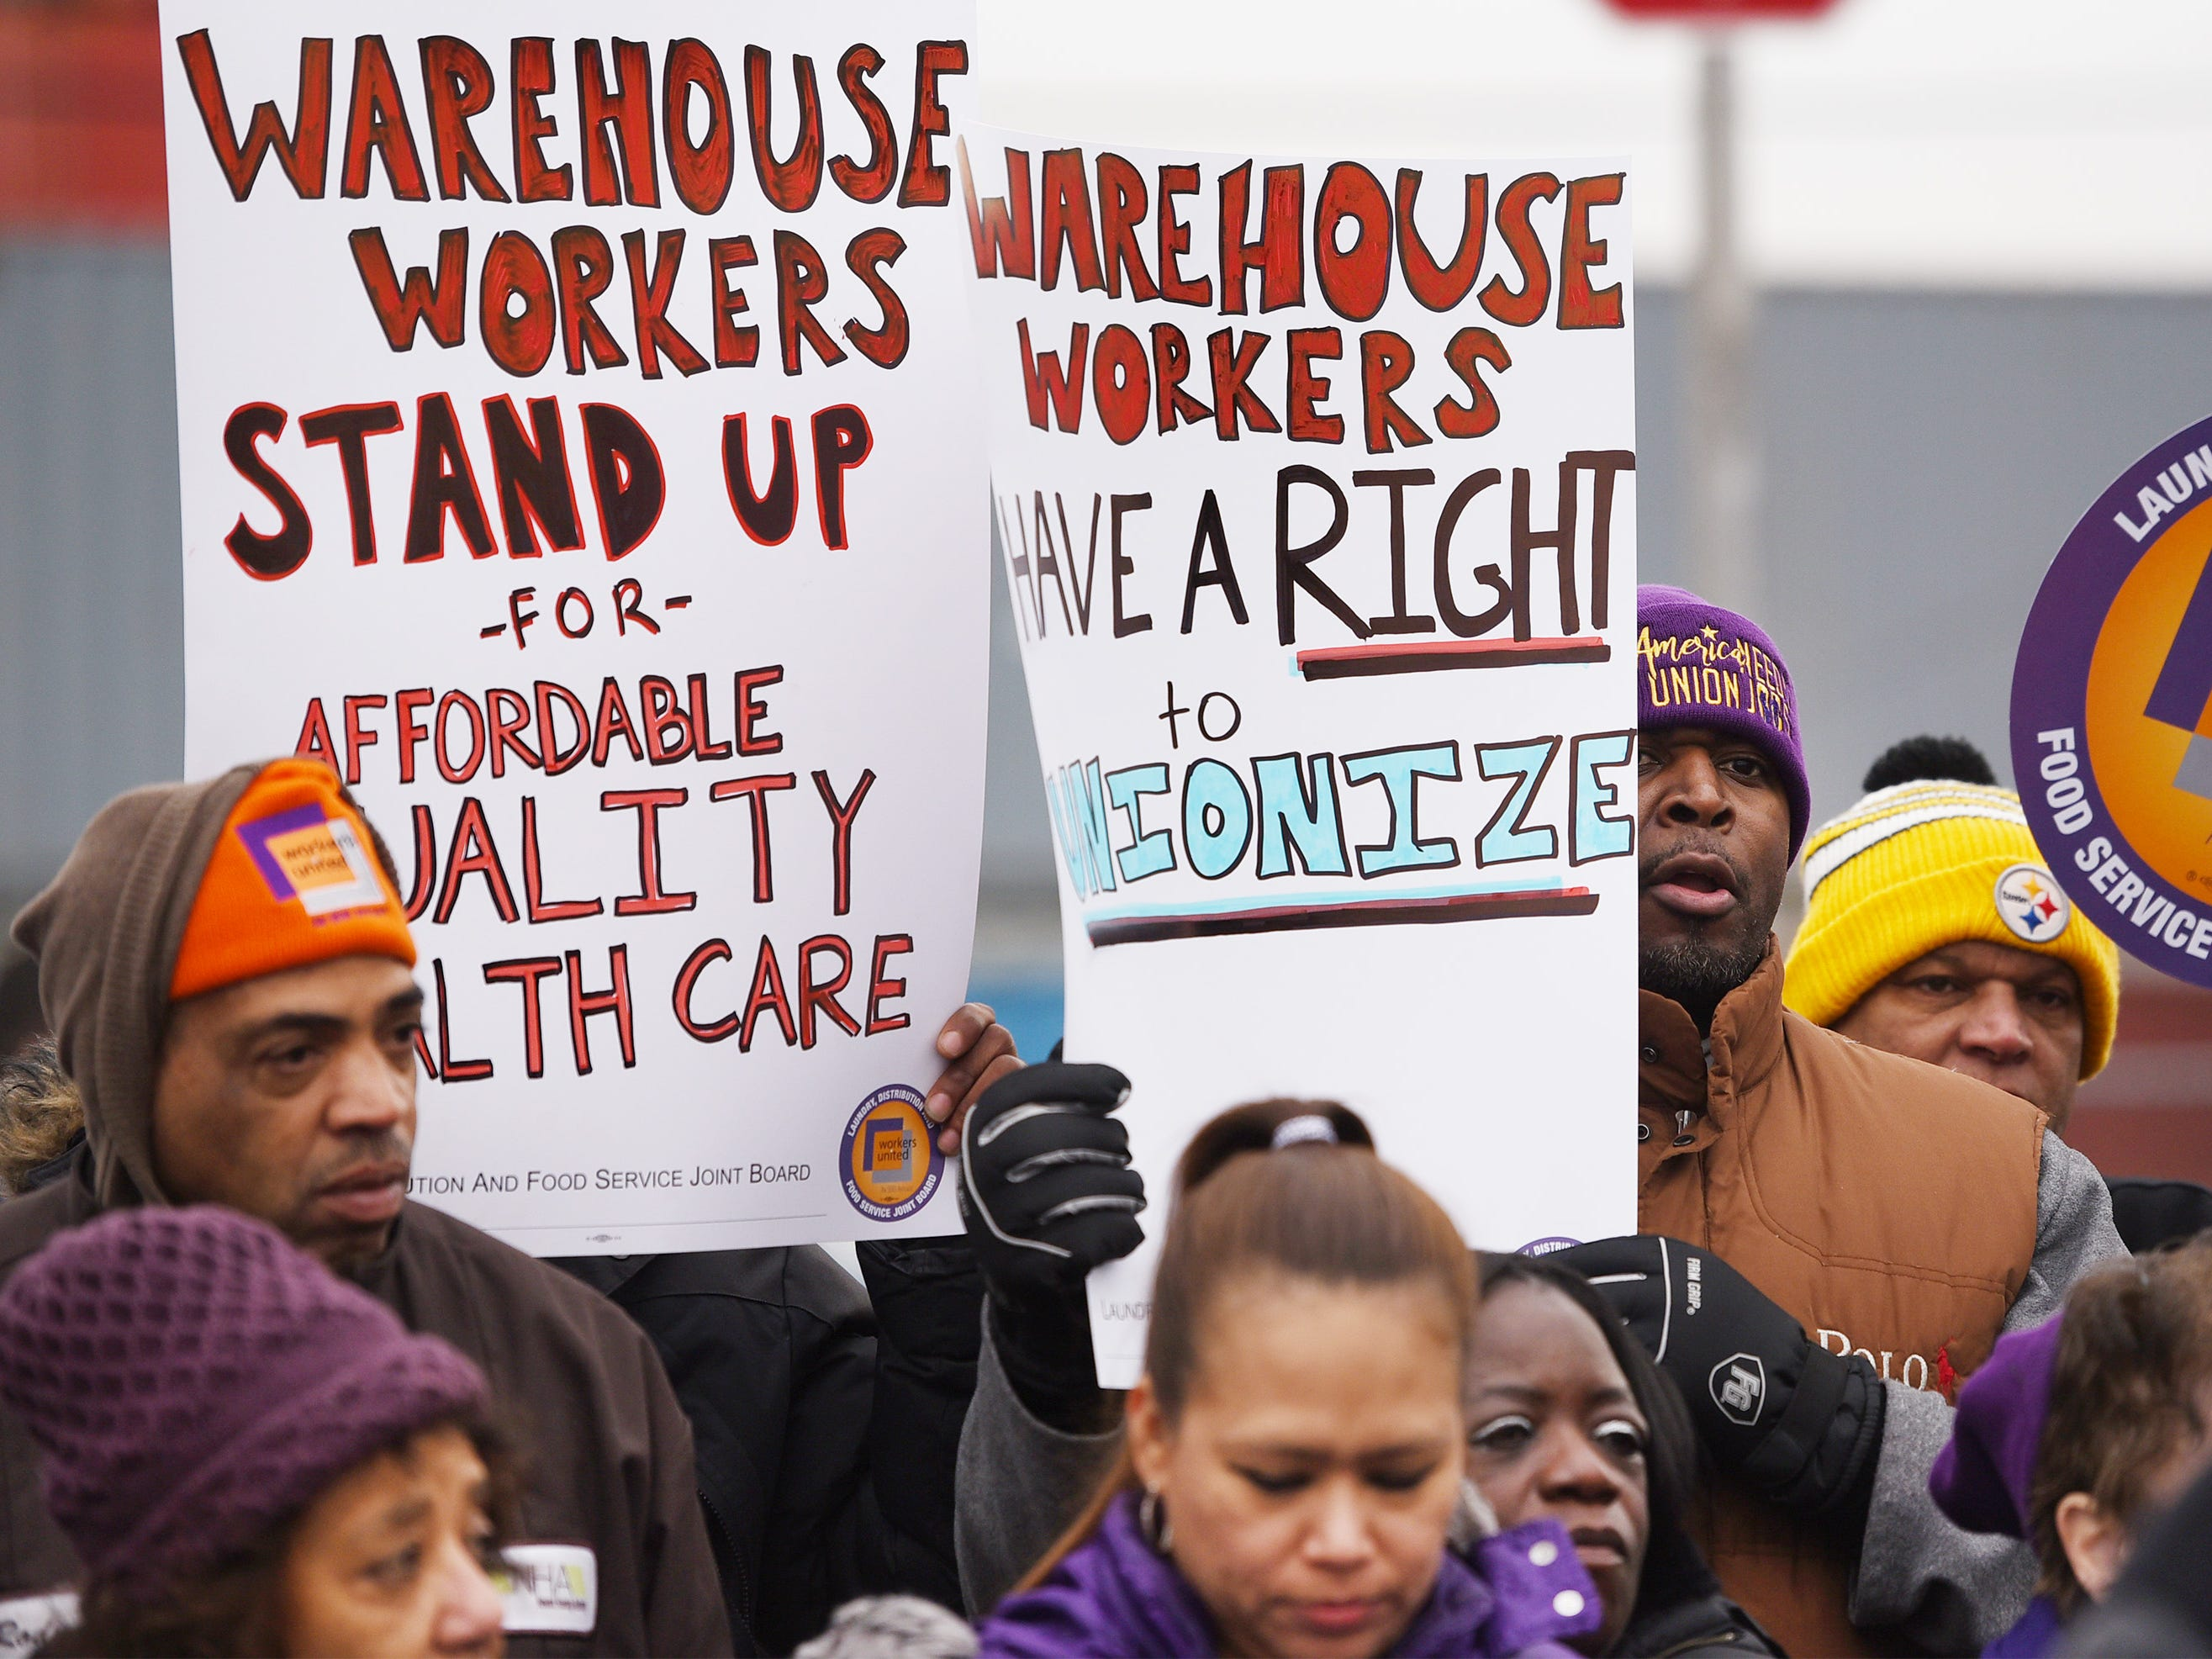 Workers hold up placards during a press conference at the Port of Newark to call for greater protections for warehouse workers, photographed at the corner of Corbin and Marsh streets in Newark on 12/12/18.